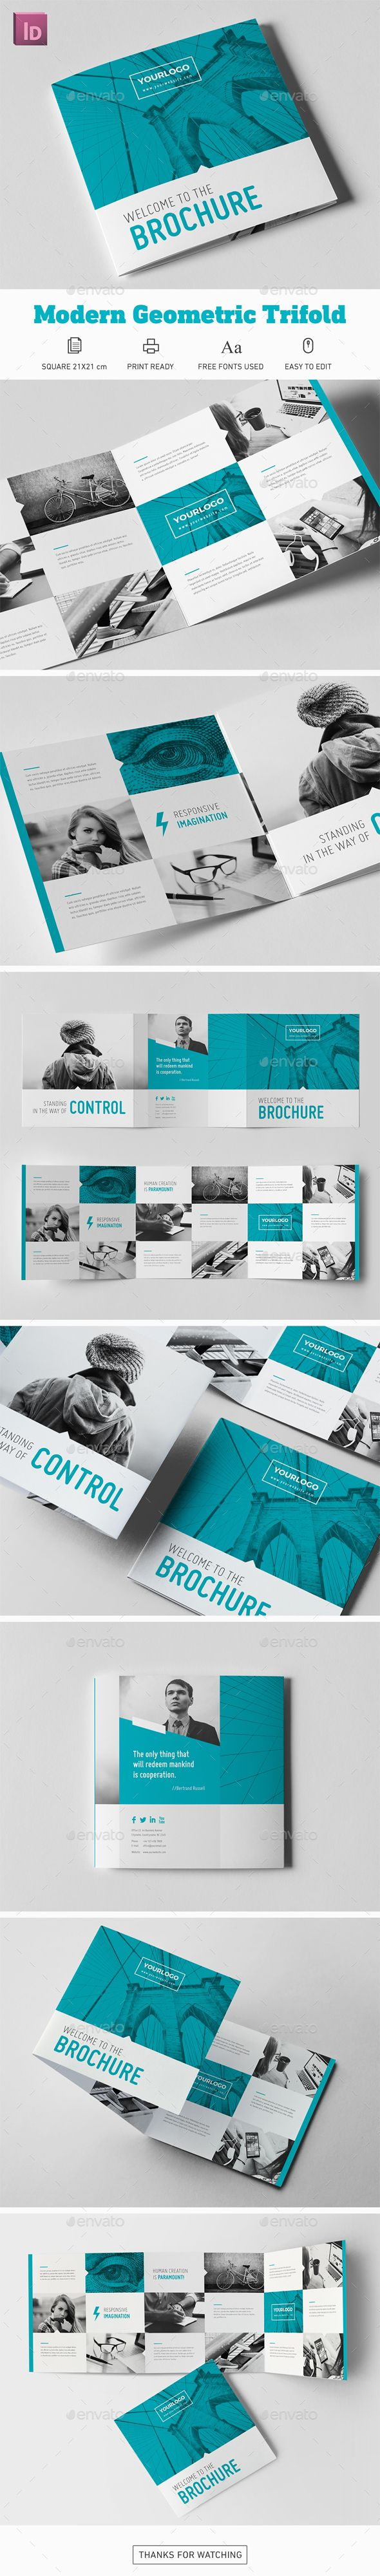 Modern Geometric Square Trifold Brochure Template InDesign INDD